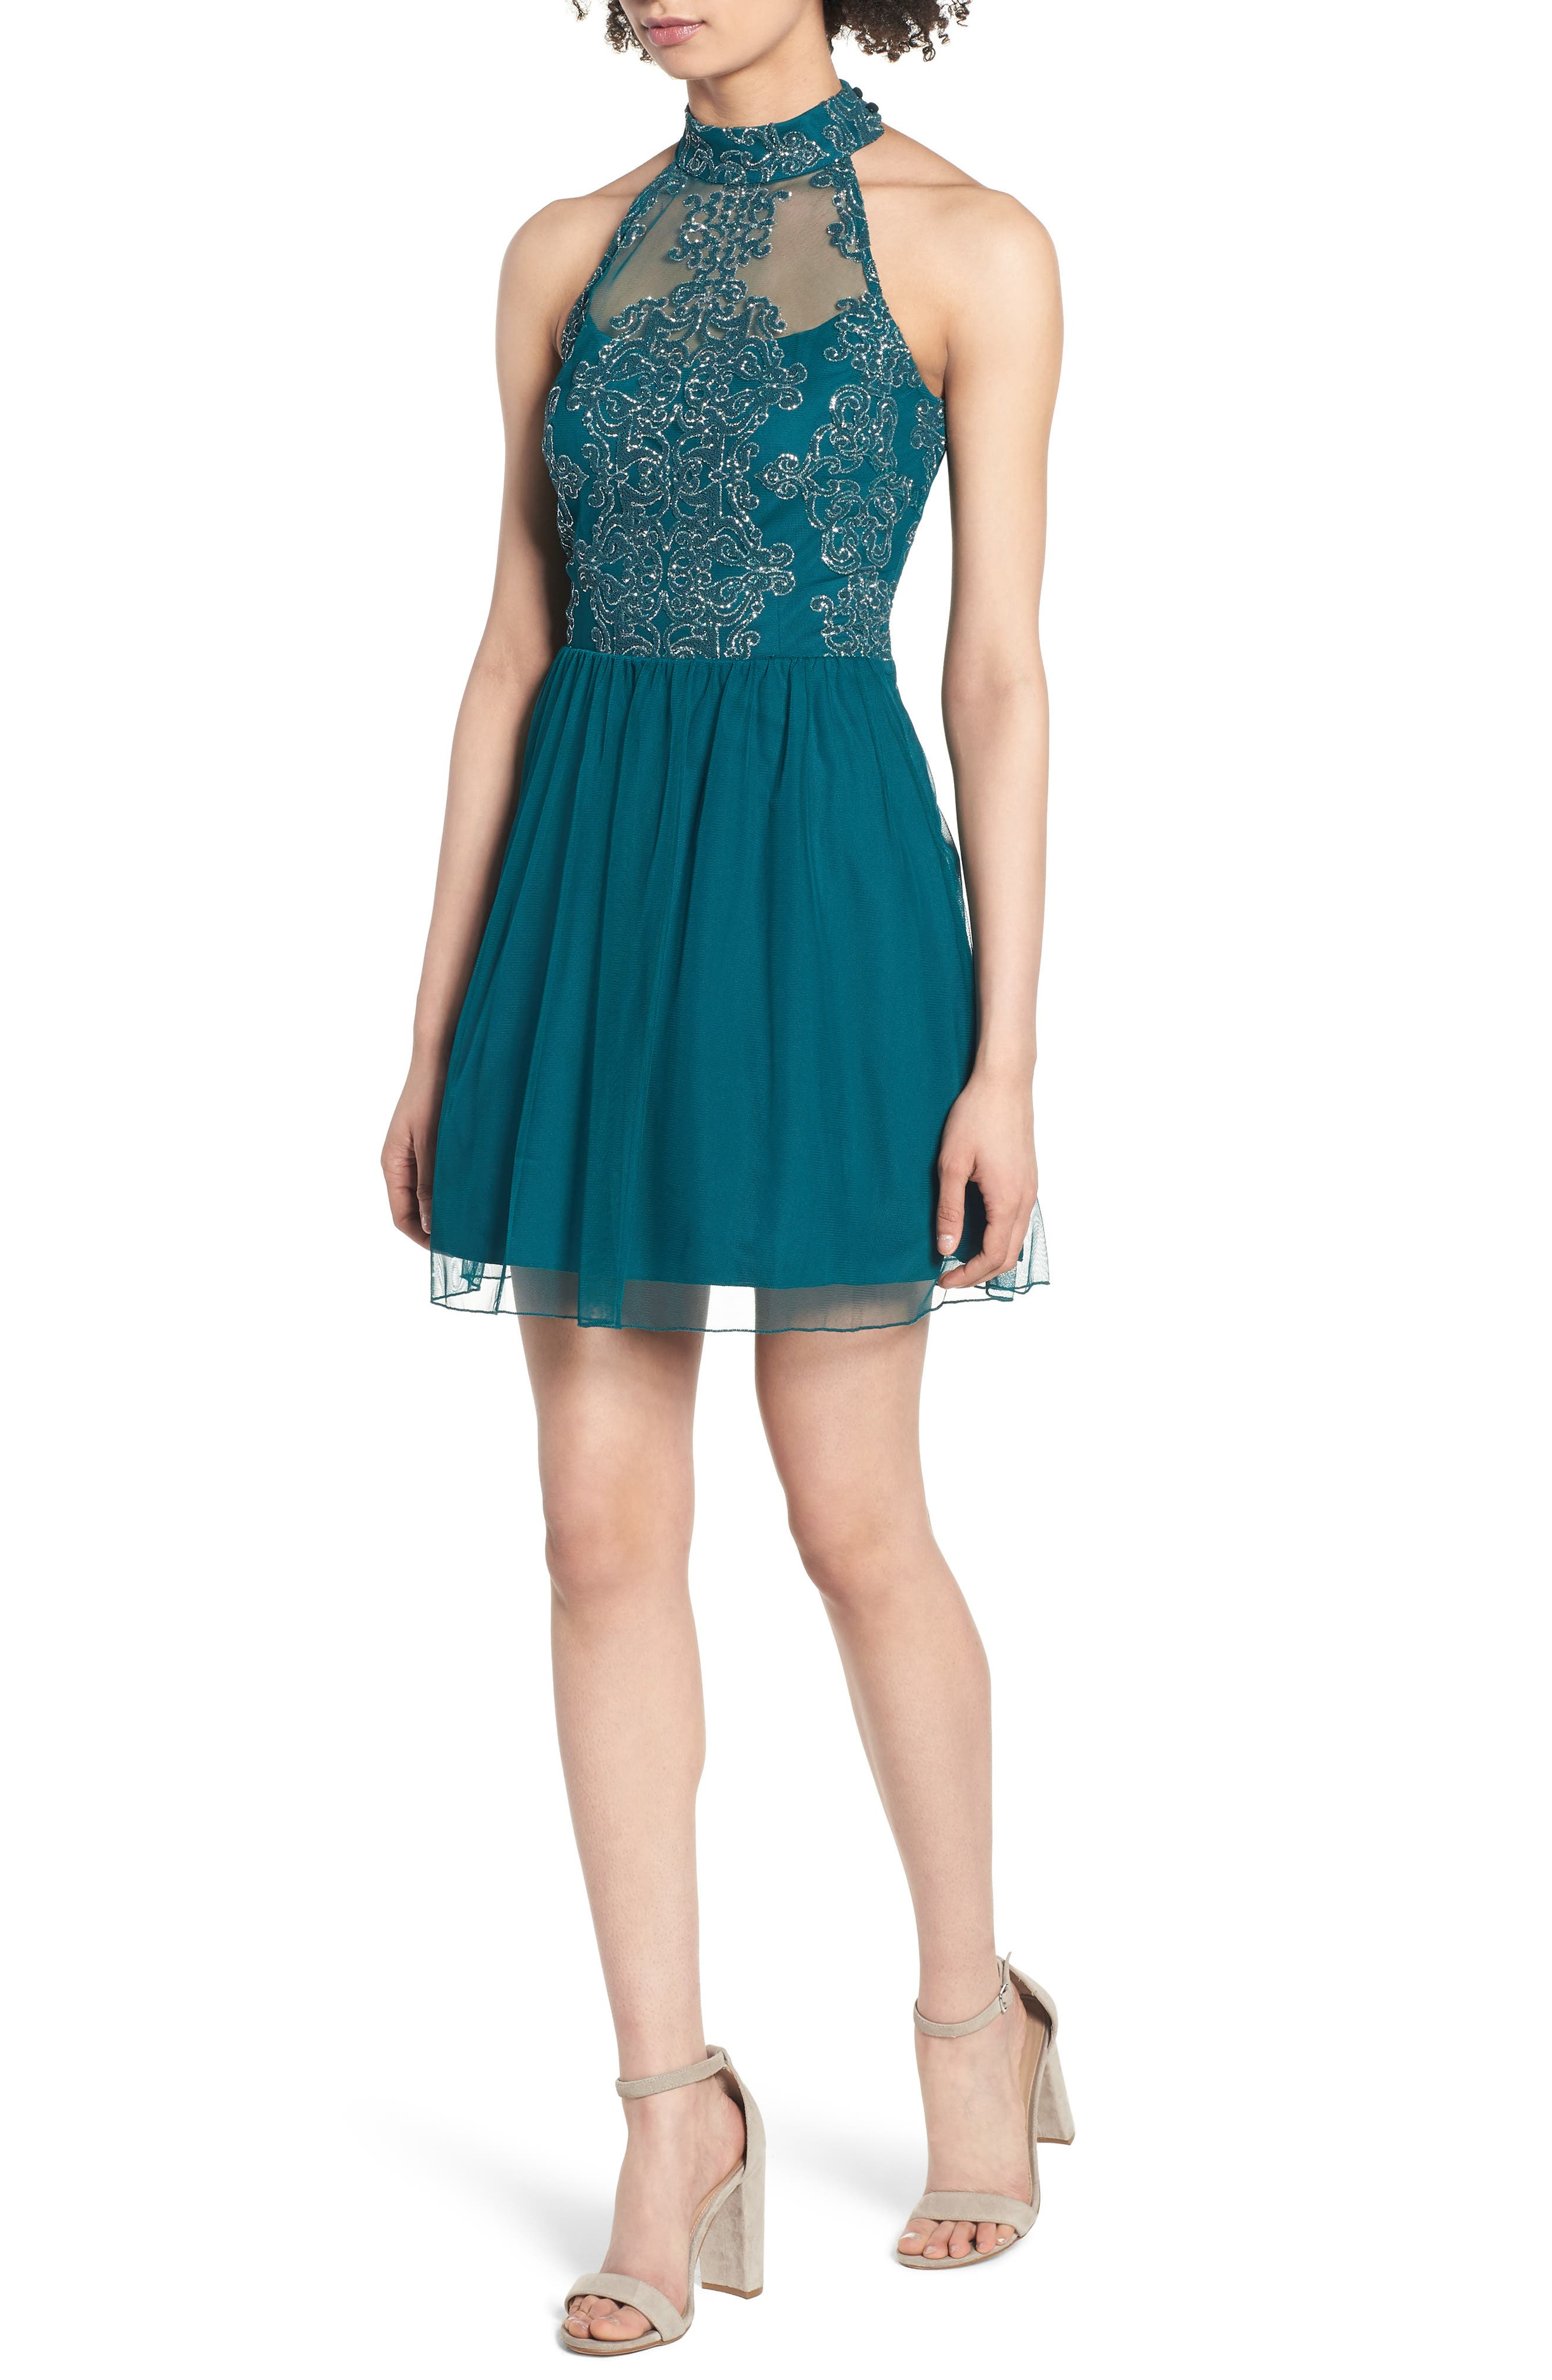 SPEECHLESS, Lace Fit & Flare Dress, Main thumbnail 1, color, EMERALD